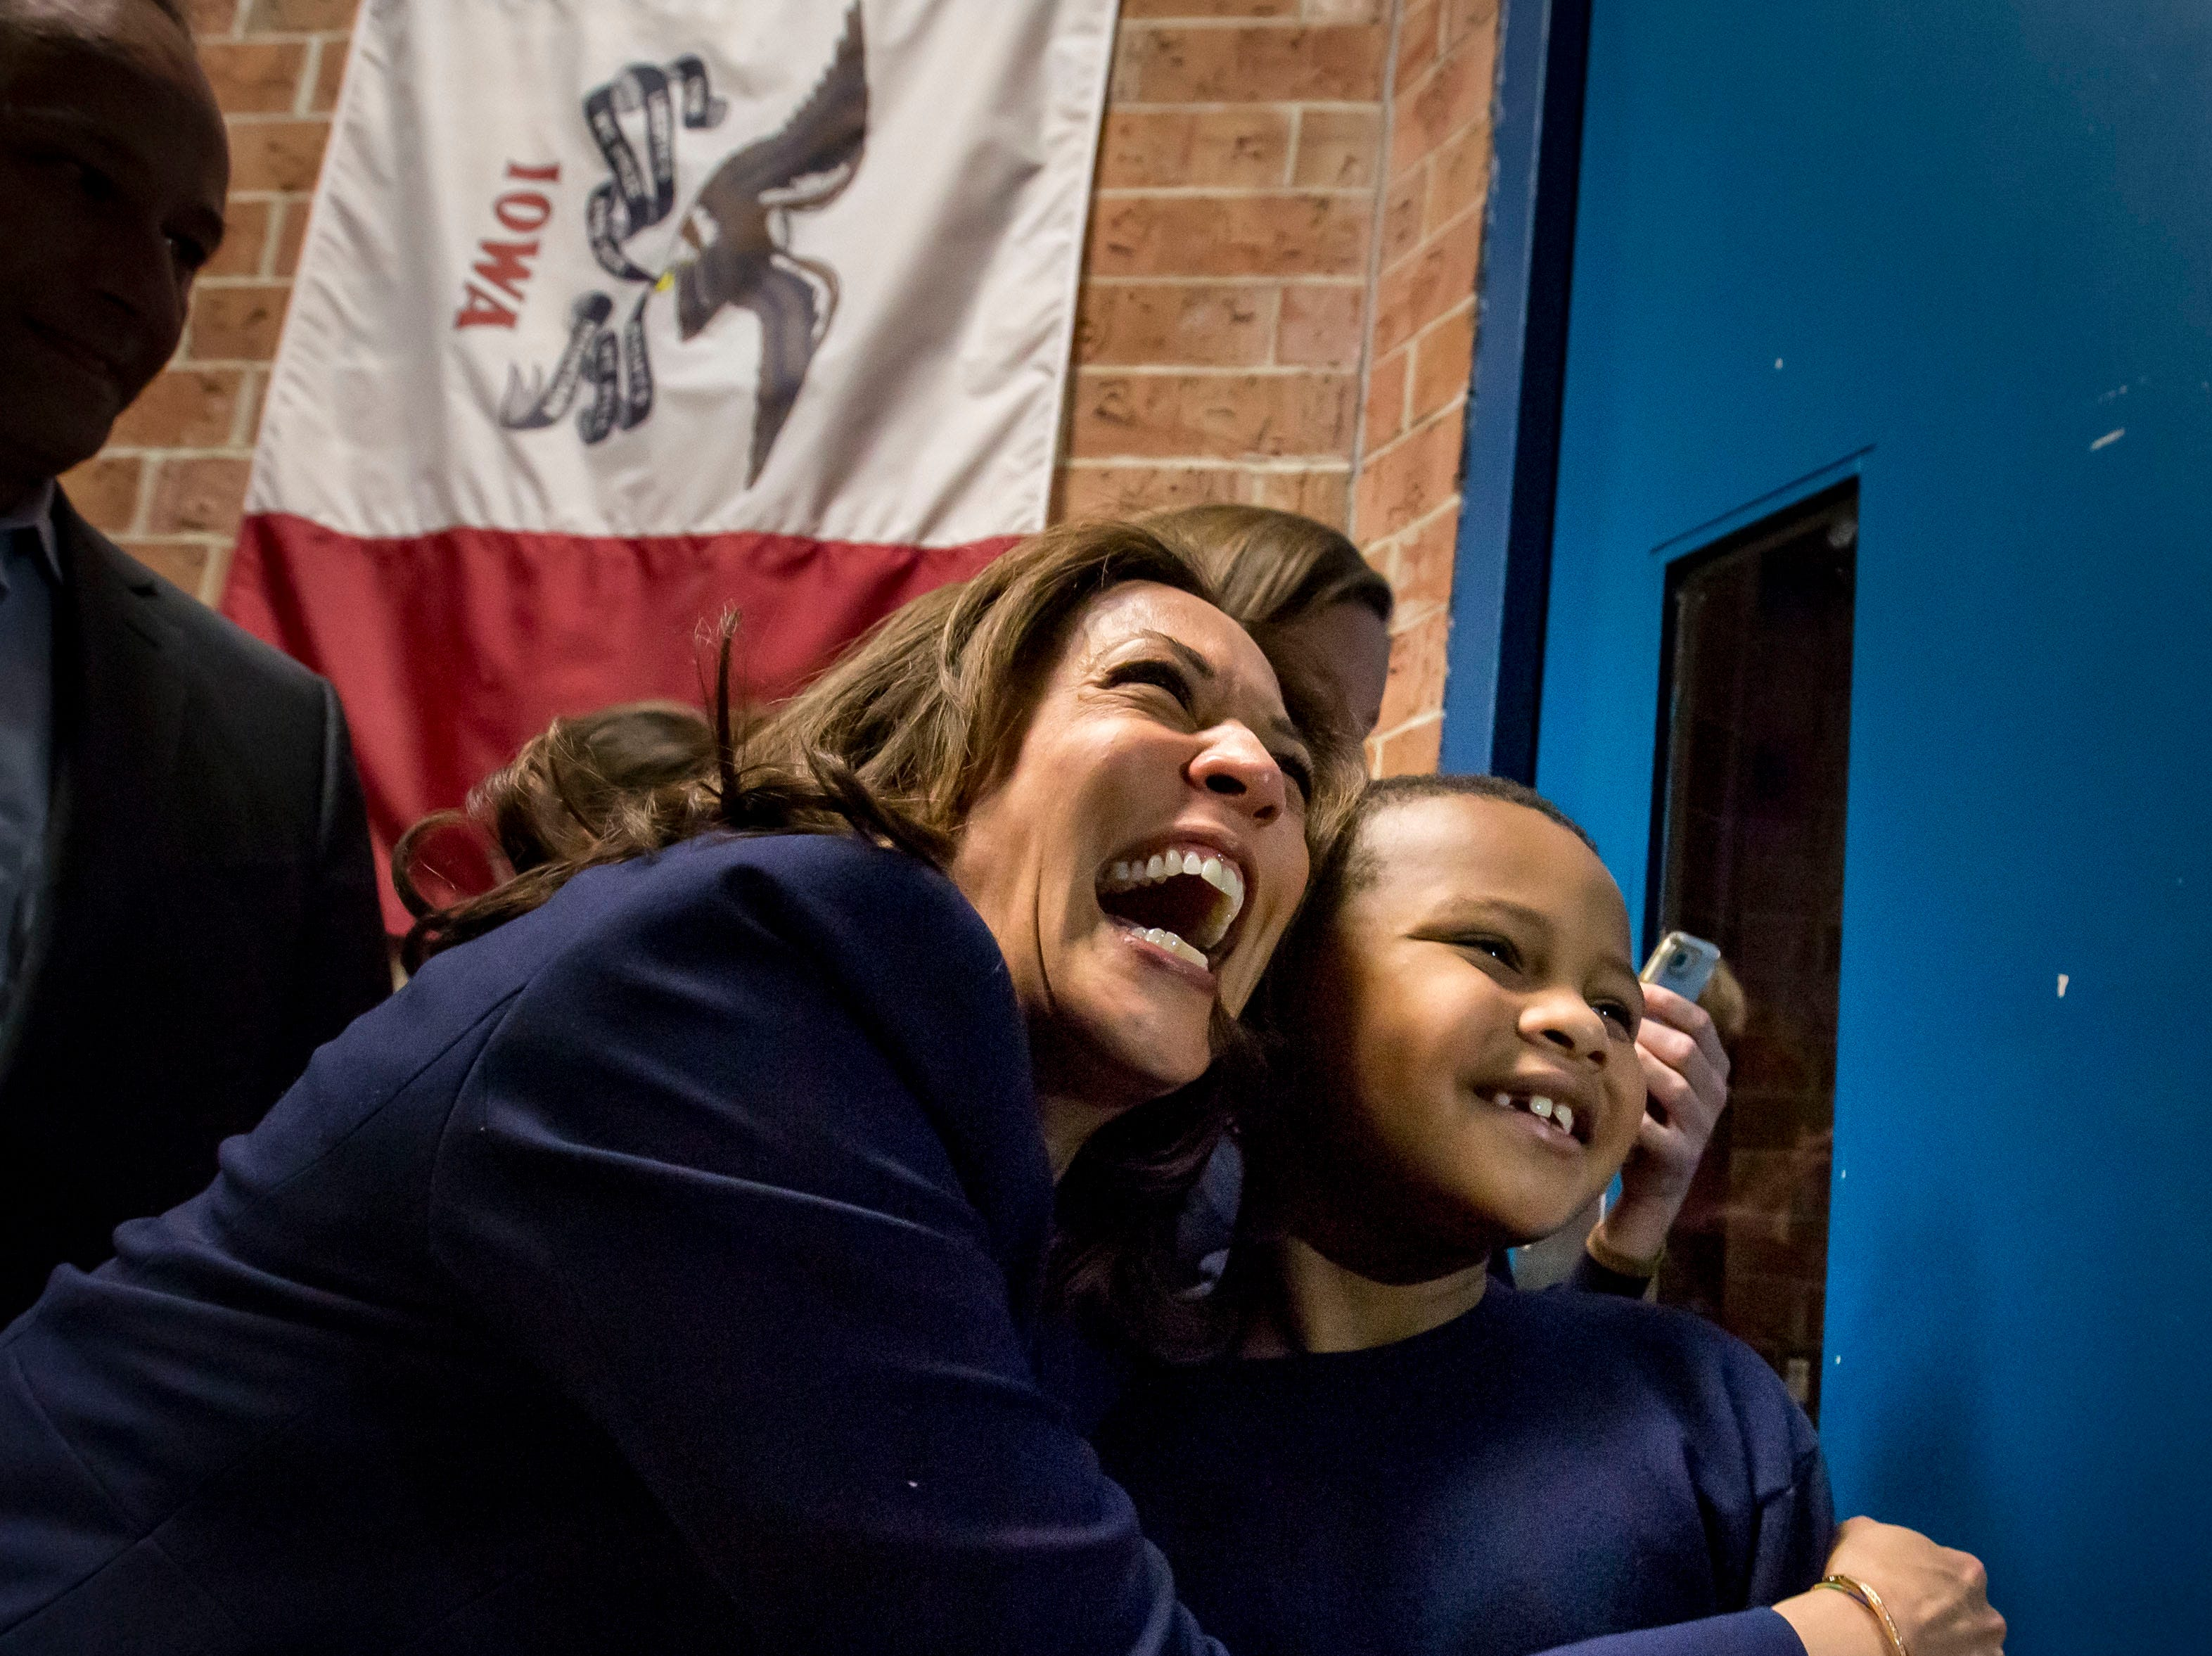 Democratic Senator Kamala Harris of California hugs Manaath Kai, 8, of Des Moines after a DMACC Early Vote rally  Monday, Oct. 22, 2018, in Ankeny, Iowa. She appeared with Congressional candidate Cindy Axne, State Senate candidate Amber Gustafson and Iowa House candidate Heather Maston.